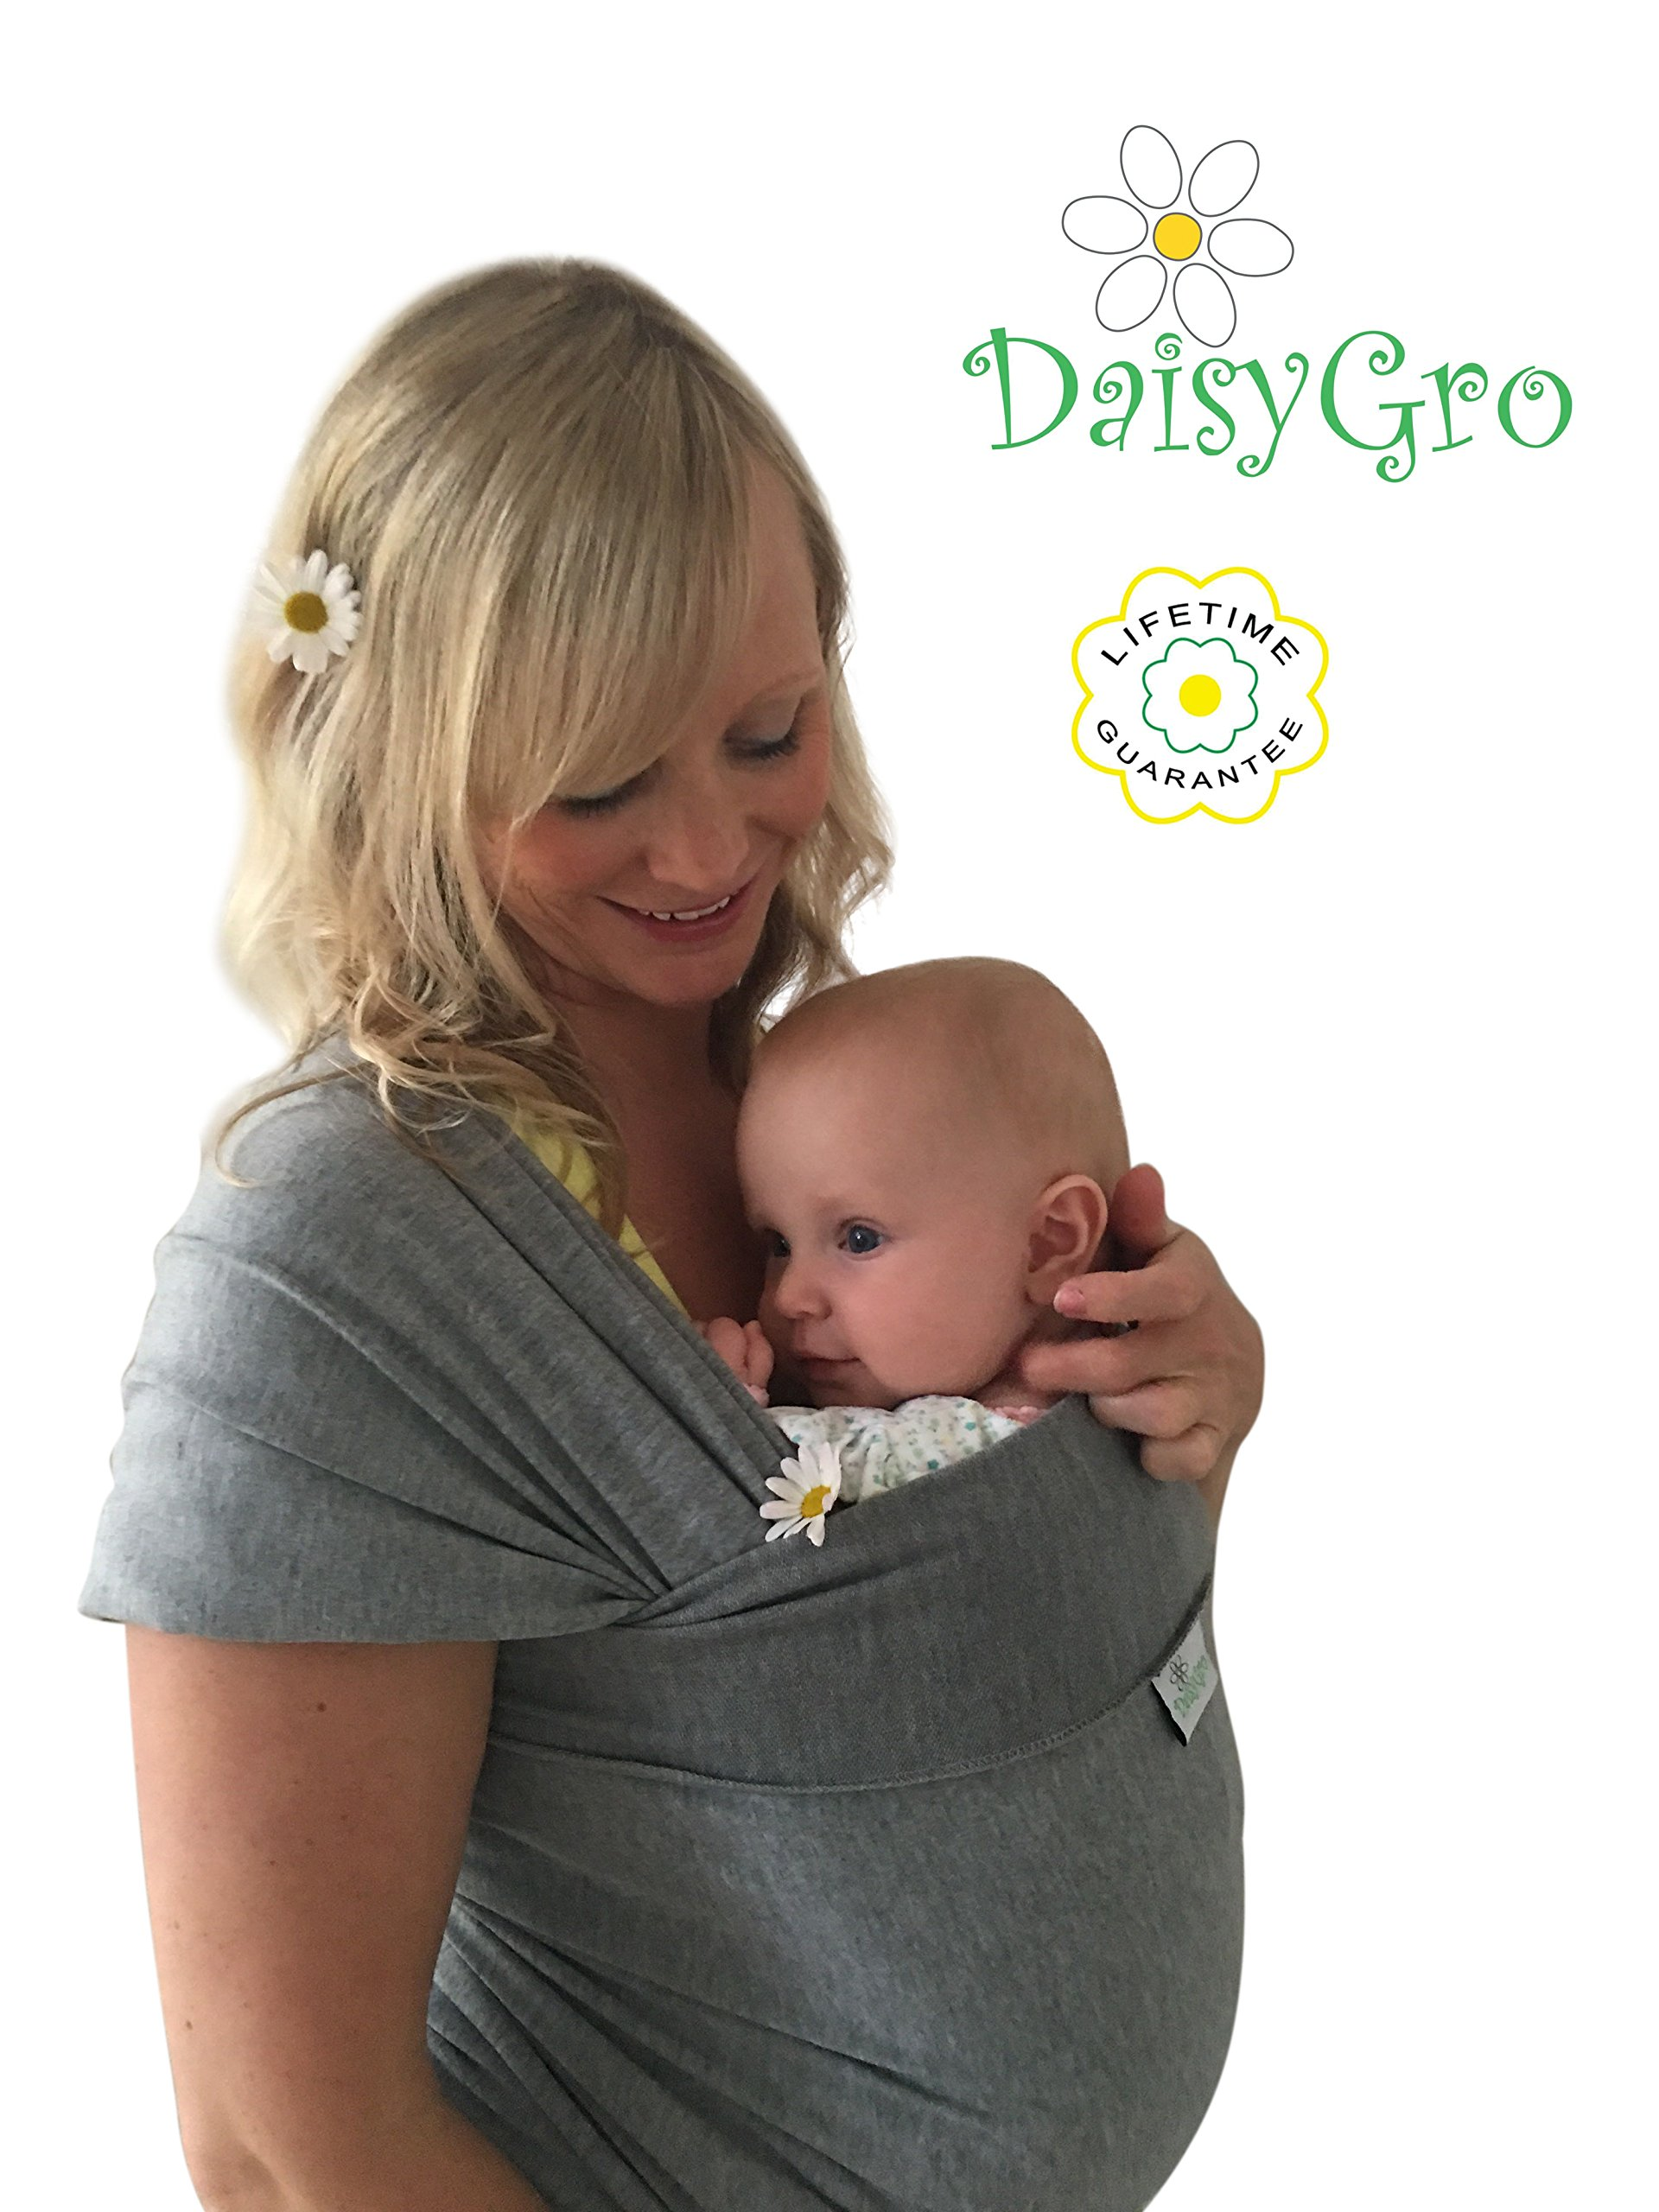 •Sale!• DaisyGro® Premium Baby Sling Carrier | 2 Size Options | Baby Wrap | Newborns, Infants, Toddlers | Breastfeeding Cover | Breathable Soft Cotton | Grey | Ideal Gift DaisyGro A SECURE BOND created making baby happy and content close to your warm body where he/she can hear your heartbeat. FREE HANDS for everyday tasks around the home or out in the world. Also a great idea for walking your way back to your PRE-PREGNANCY FITNESS level without the need to find childcare! All this whilst your baby is warm and snug close to you. 2 SIZE OPTIONS and EASY TO USE versatile design with no straps or buckles - comfortable for both baby and you! Researched and manufactured to the perfect length. Can be used for different holds. Perfect for breastfeeding. Safe for newborns, babies and toddlers up to 35 lbs. Comes in a handy bag so the wrap can be stored away when not in use. 1